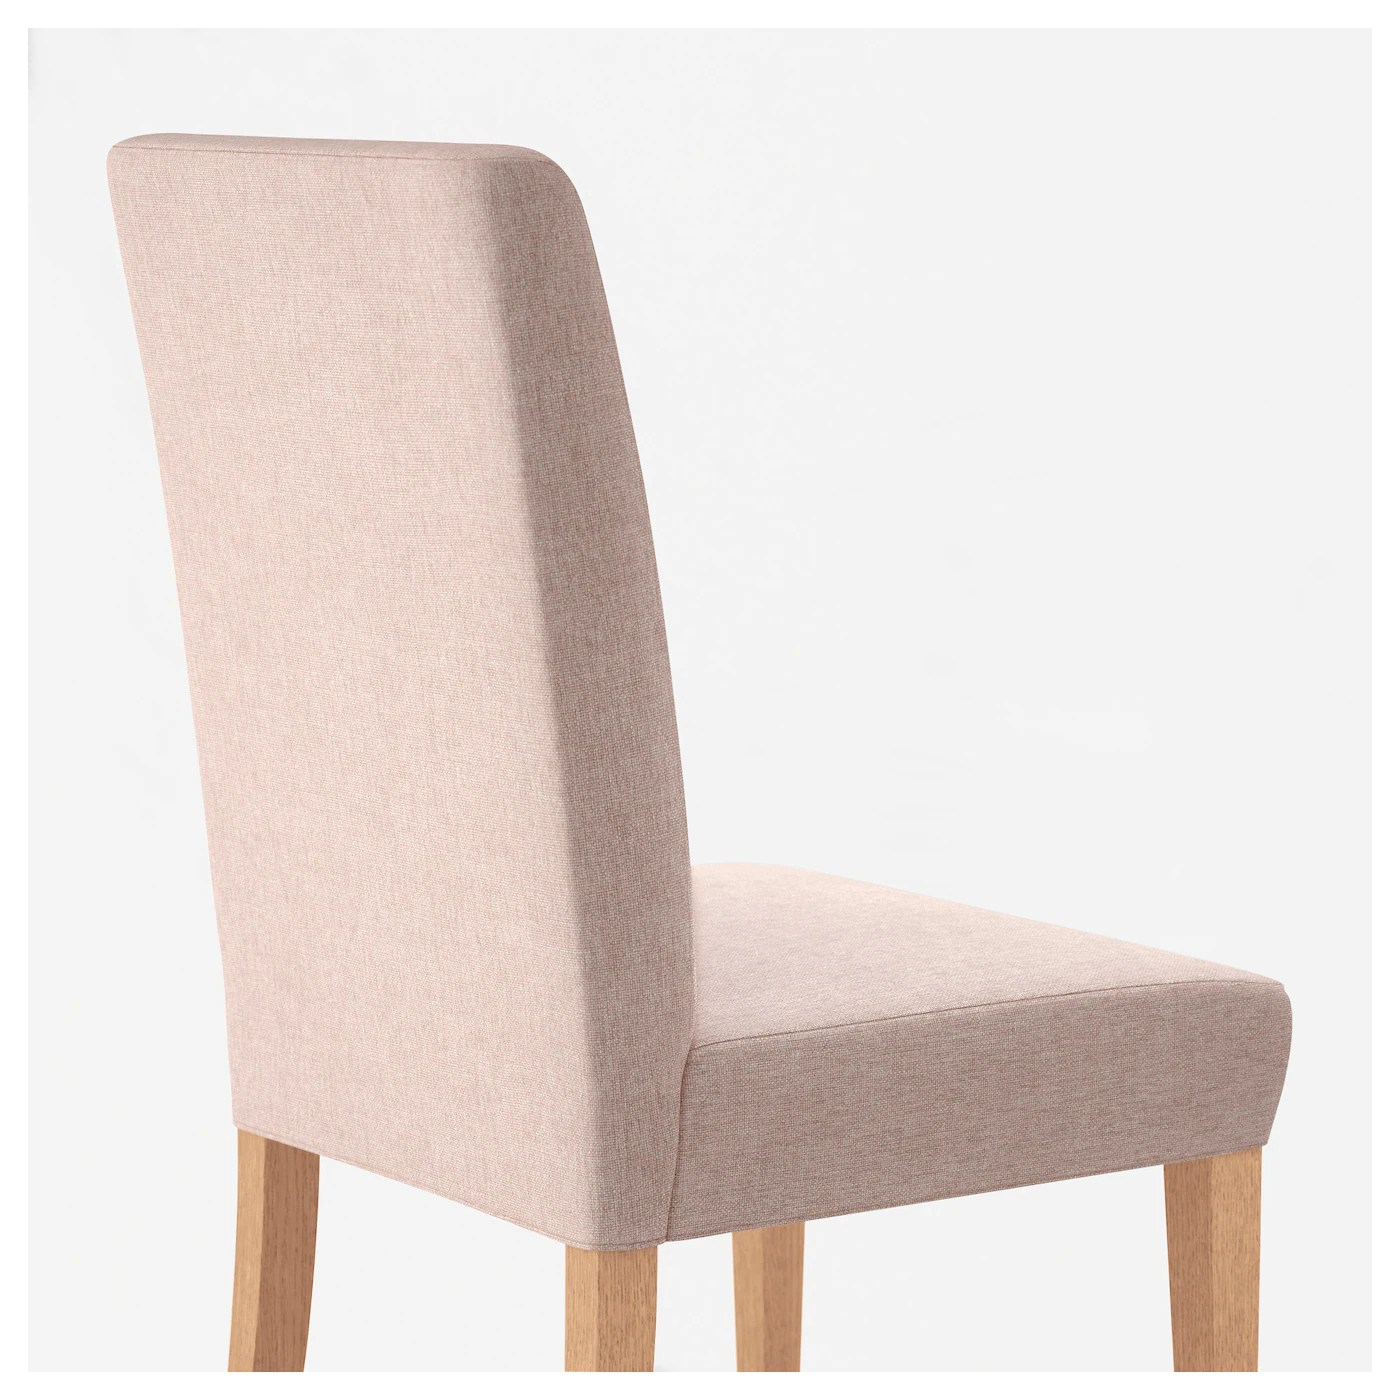 pale pink chair mid century chairs for sale henriksdal oak gunnared ikea